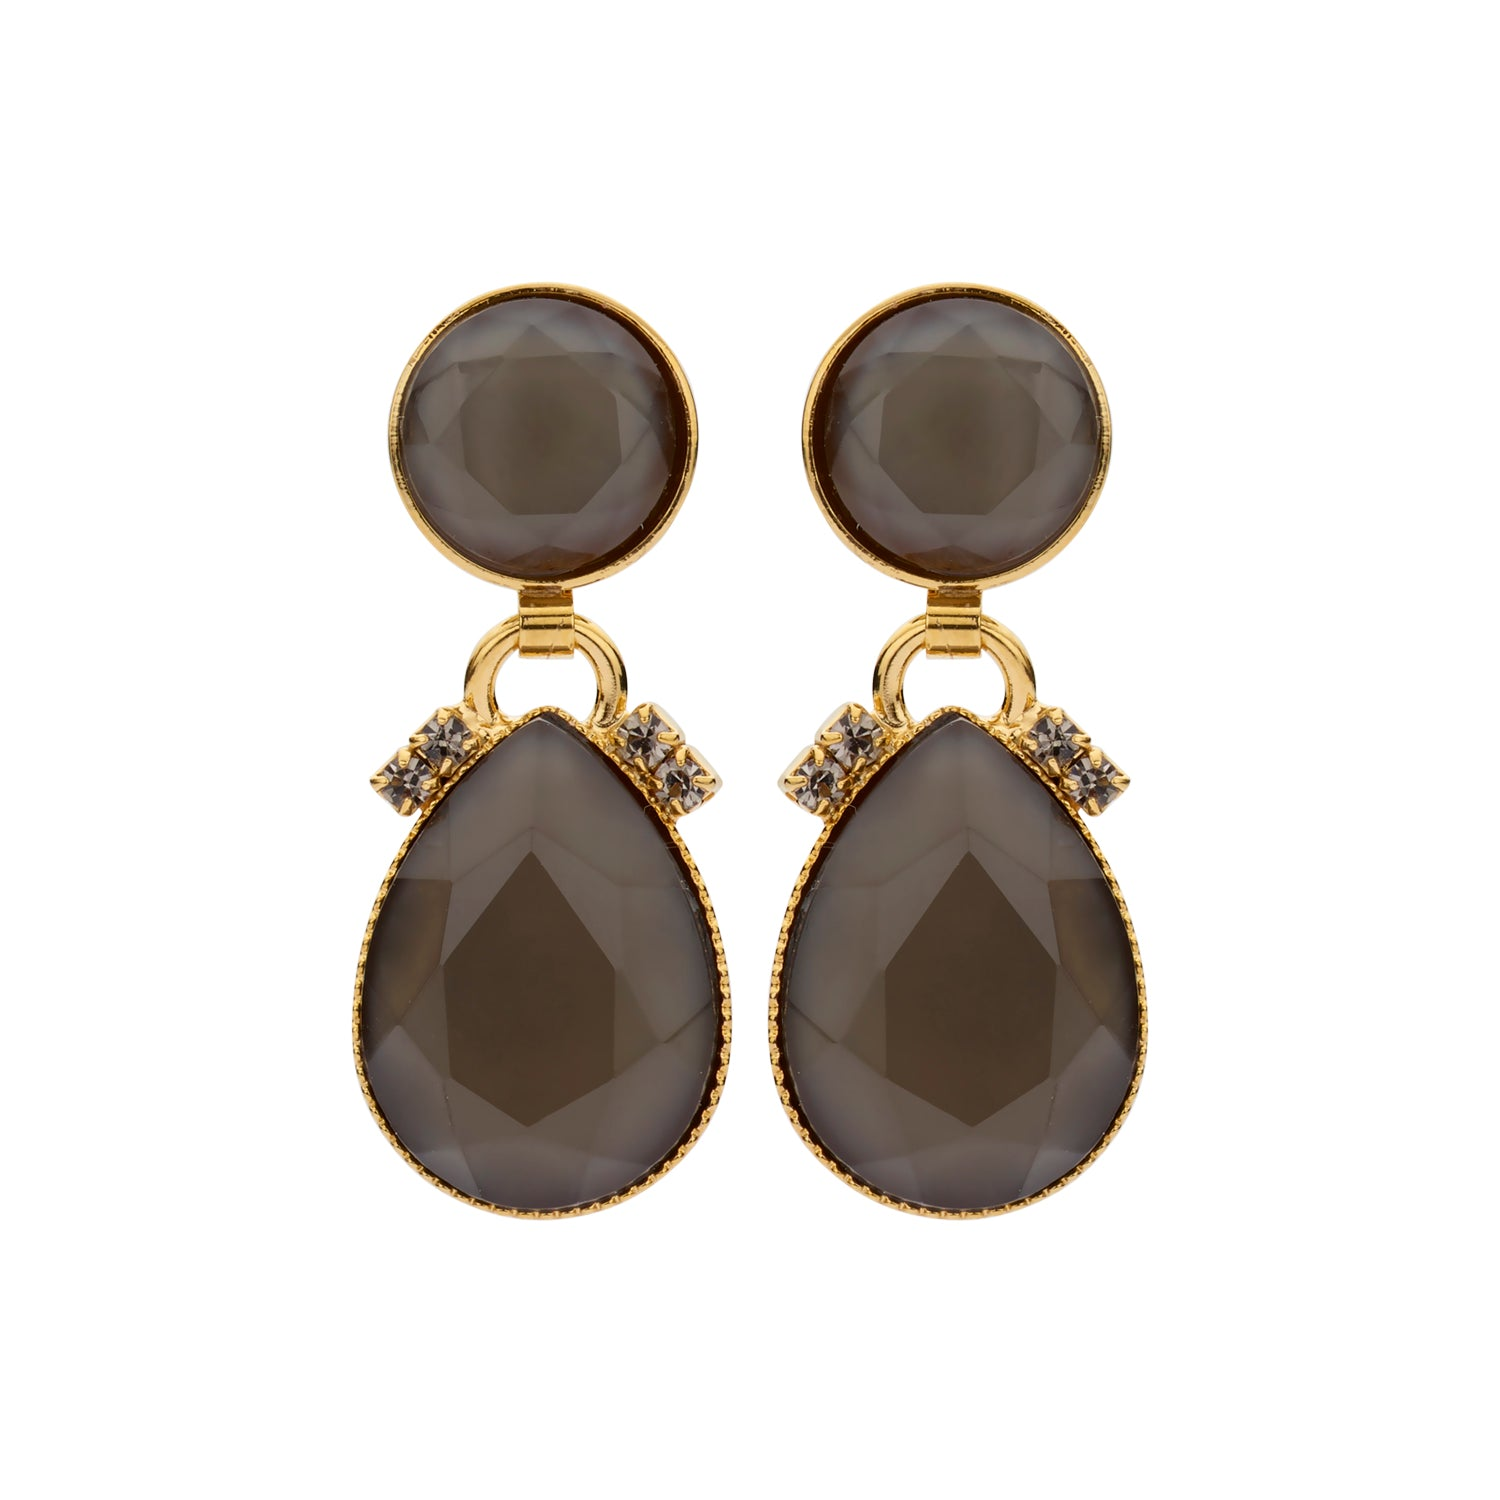 Mini 2 drops kaki beige earrings